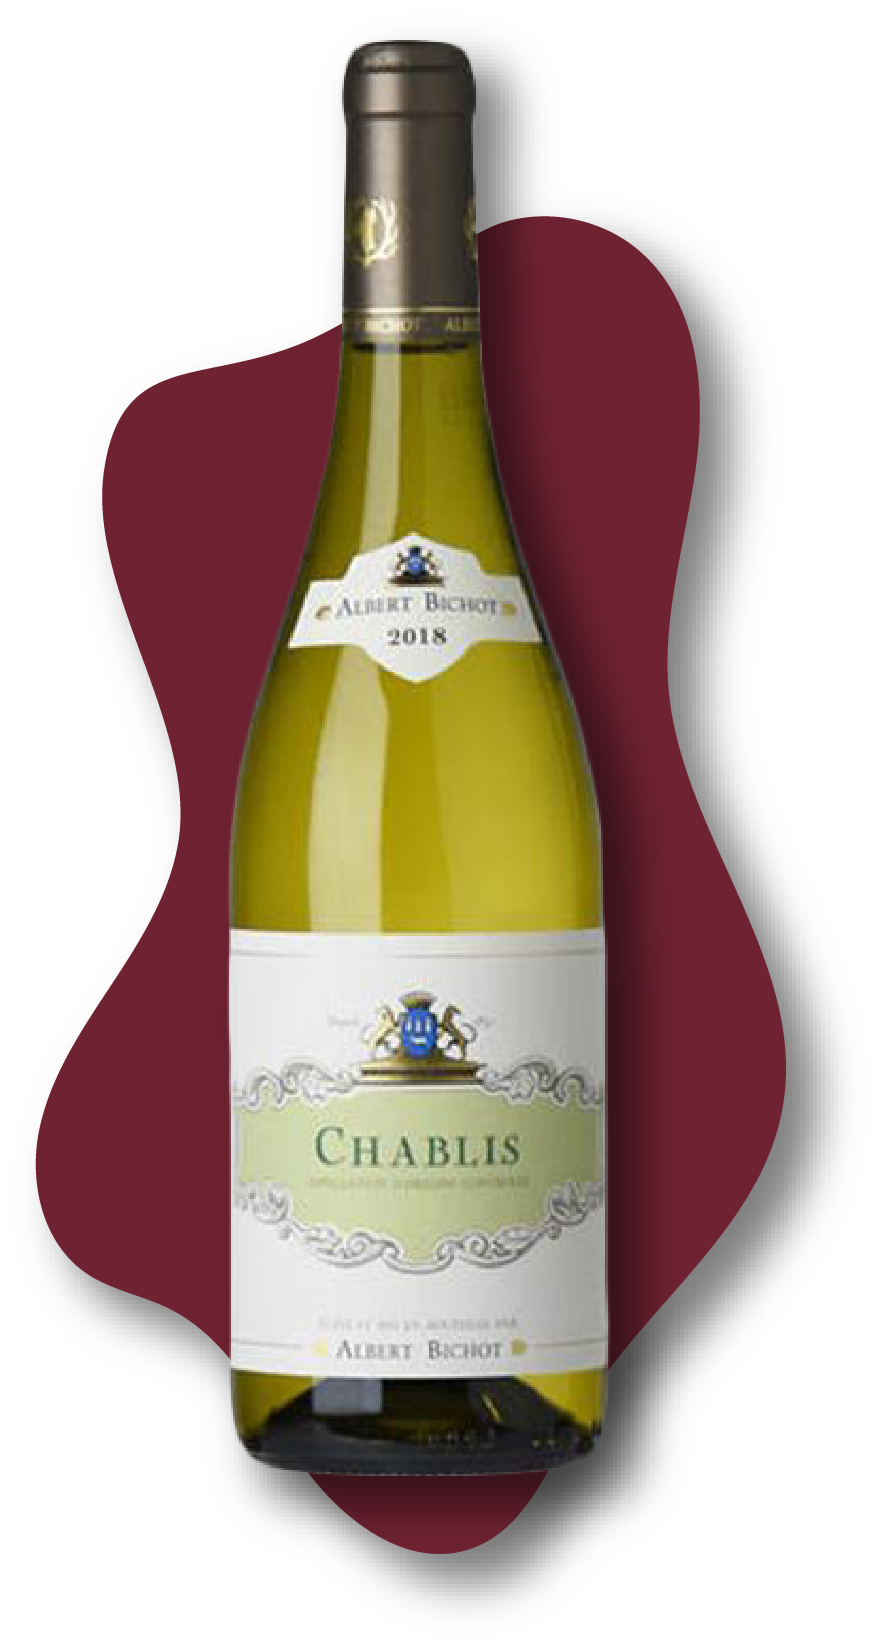 Albert Bichot Chablis, Burgundy, France, 2018  Online Wine Class Image at learnaboutwine.com